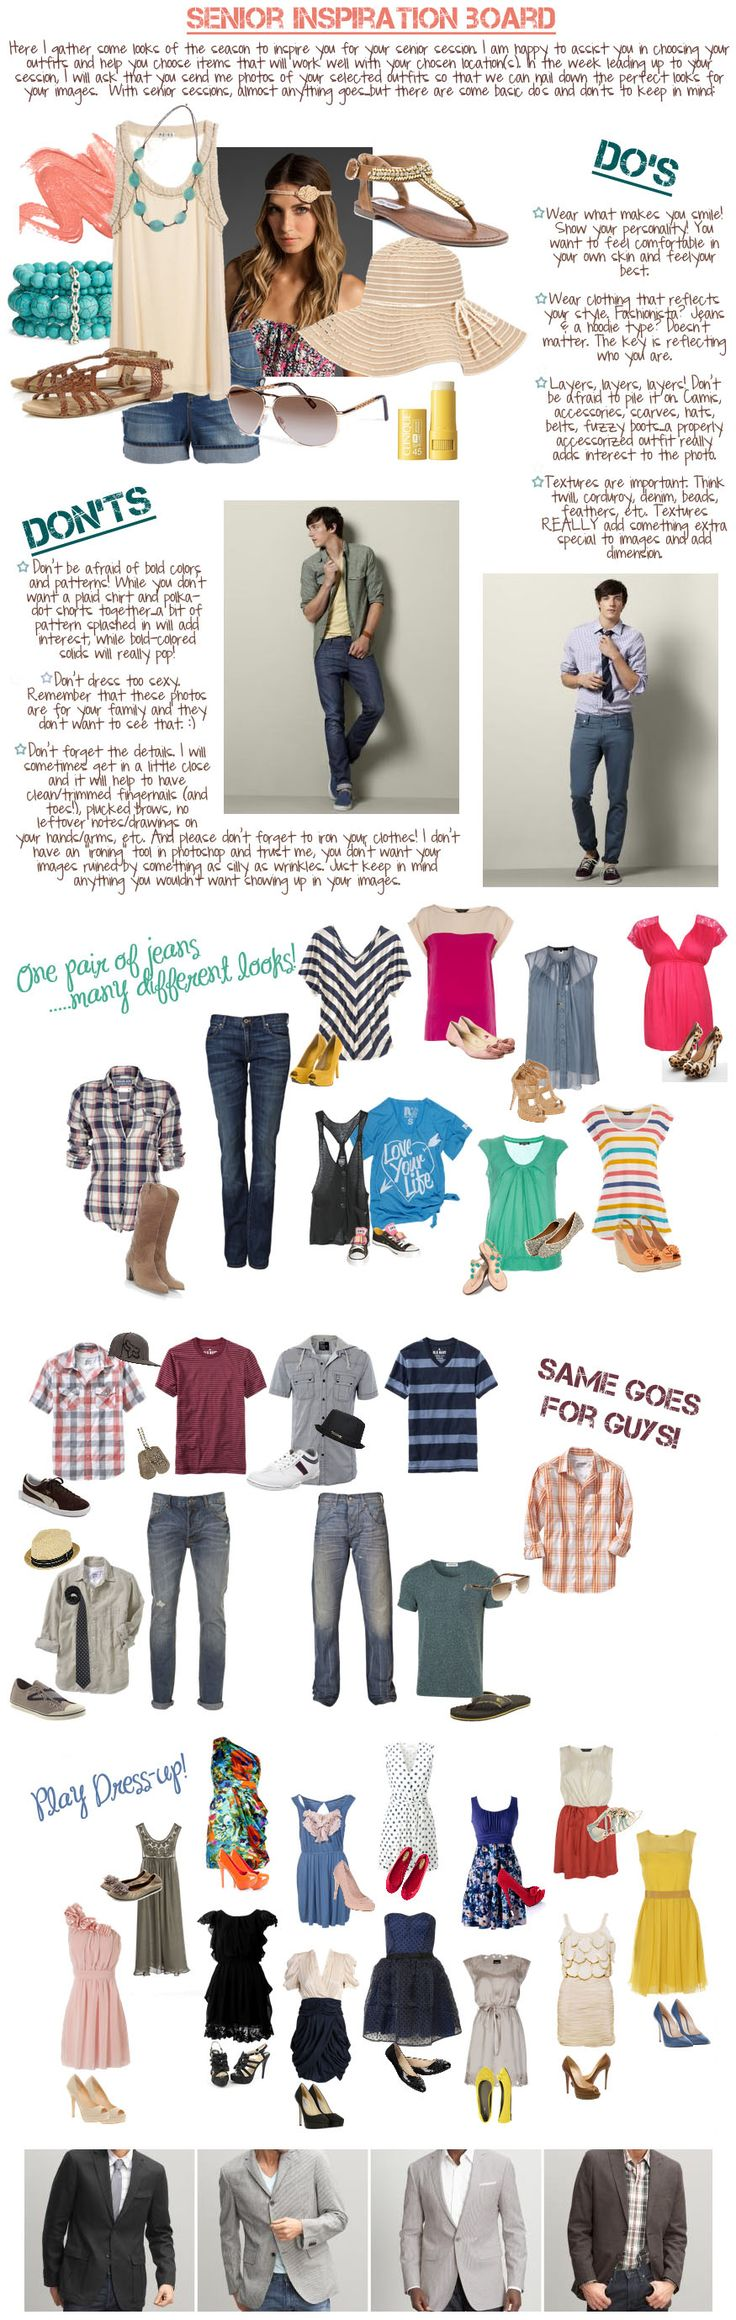 what to wear for senior photos -TIP everyone wants thinning tips, wear 3quarter length sleeves, wear a belt to show waist, don't wear clothes too big (or too small!)